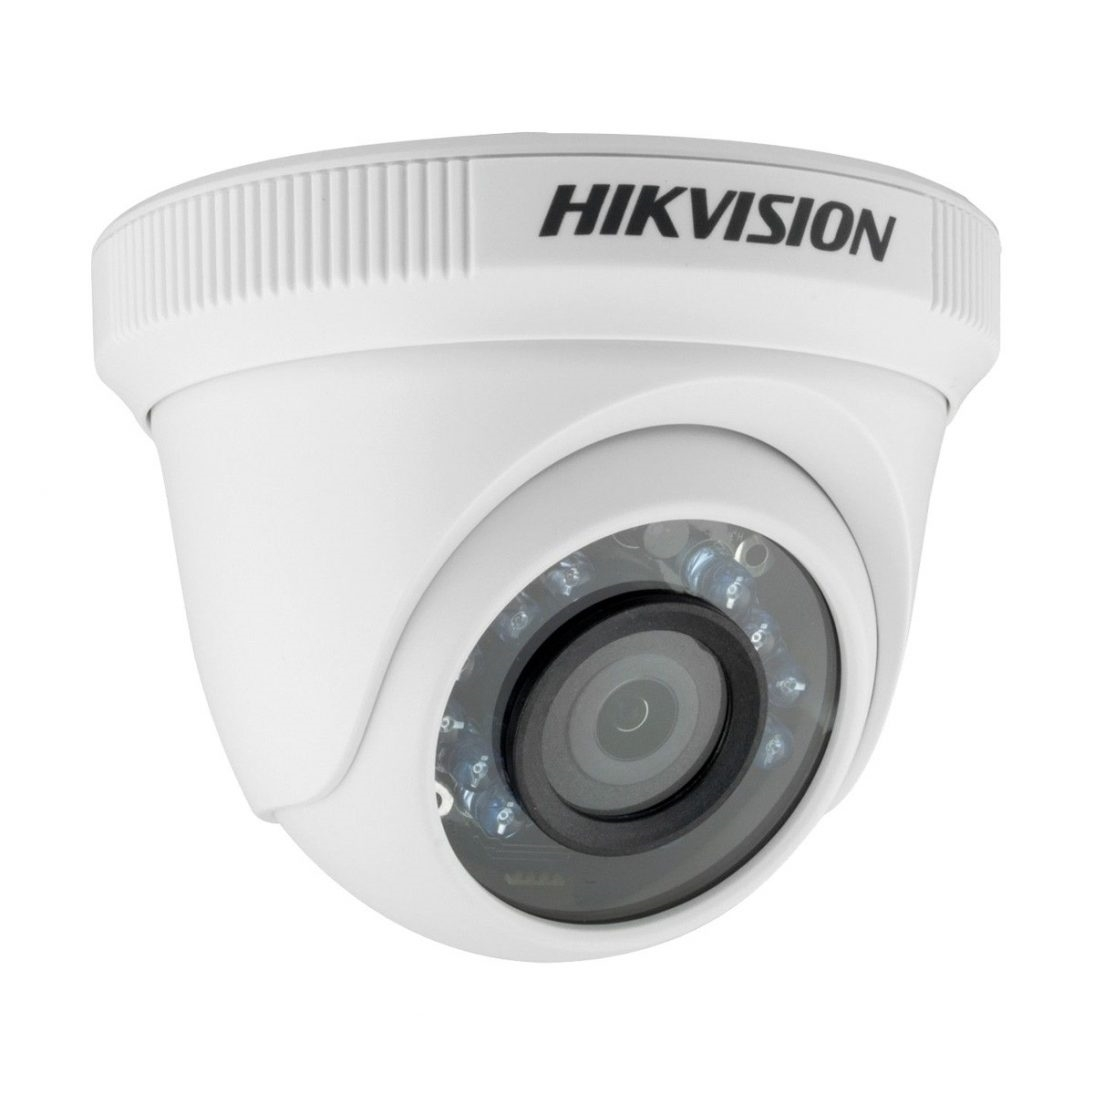 Picture of DS-2CE56D0T-IRPF 2,8mm 2MP THD TVI/AHD/CVI/CVBS Hikvision 1080p